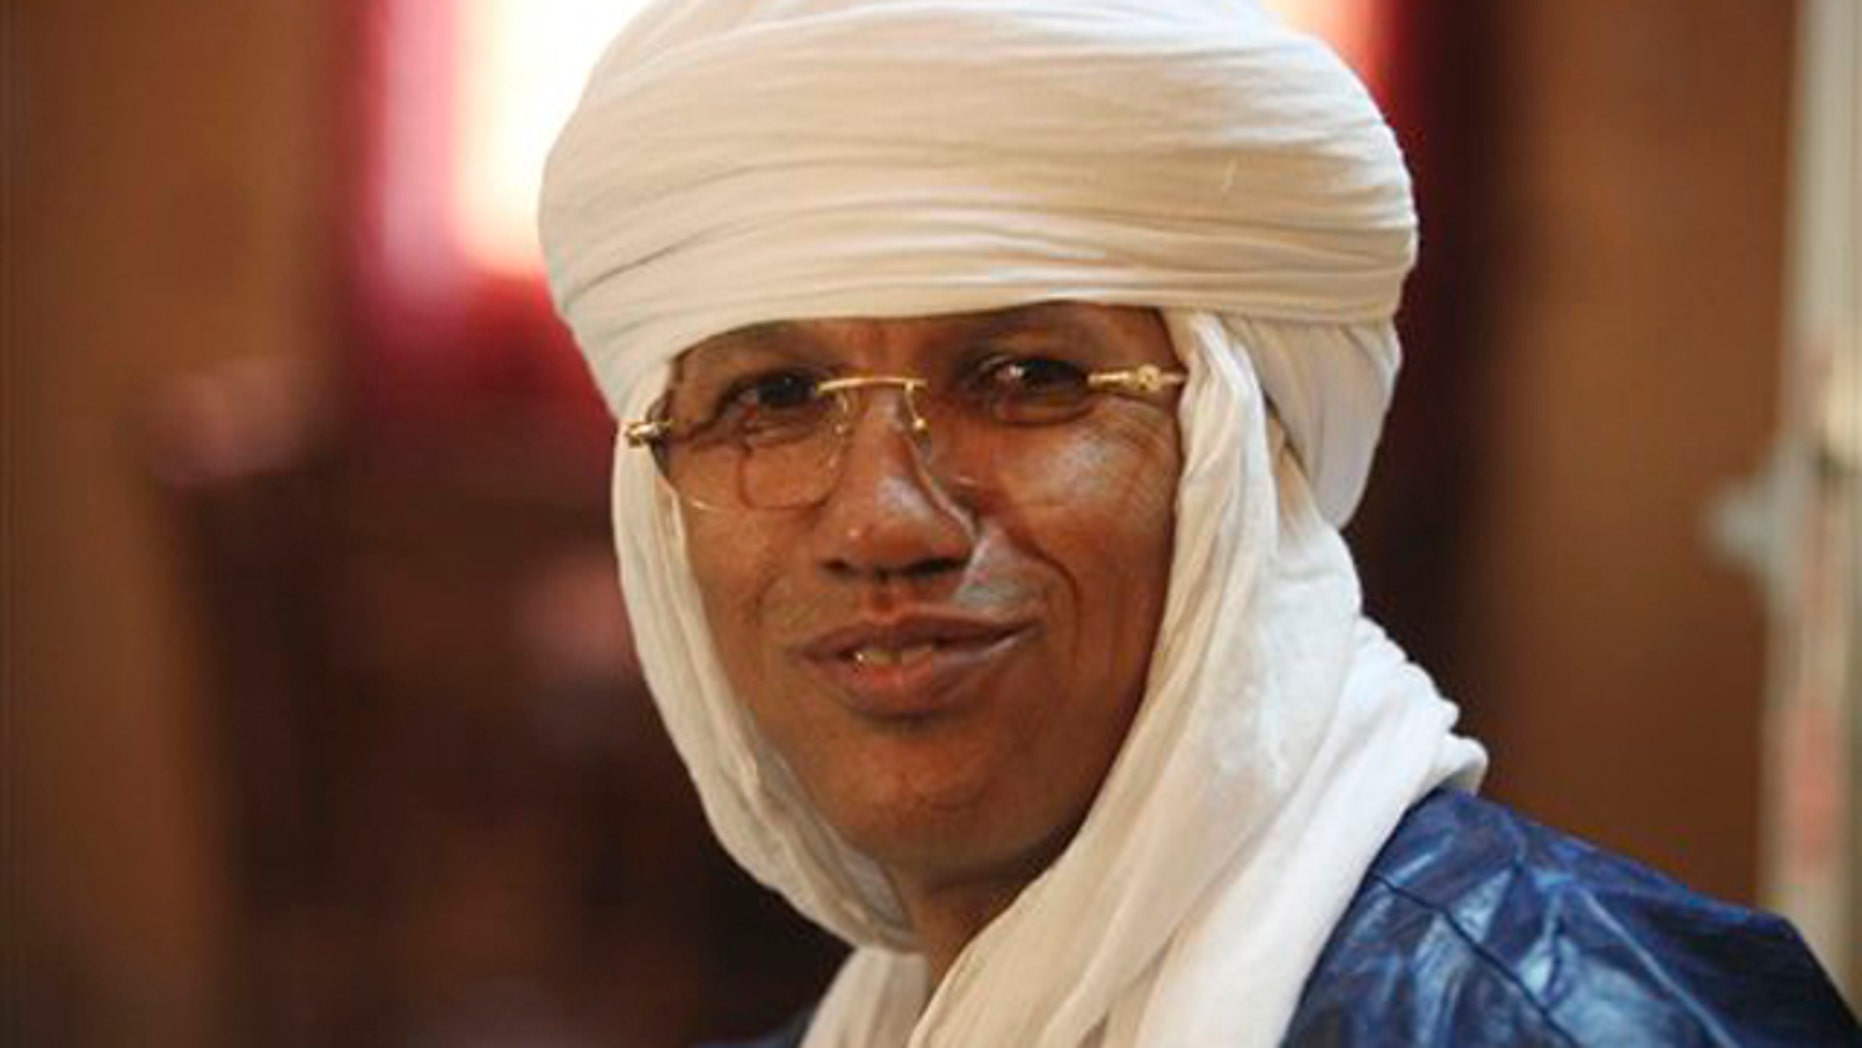 Sept. 13, 2011: Tuareg rebel chief and Gadhafi insider, Aghaly Alambo speaks to Associated Press during an interview in Niamey, Niger.